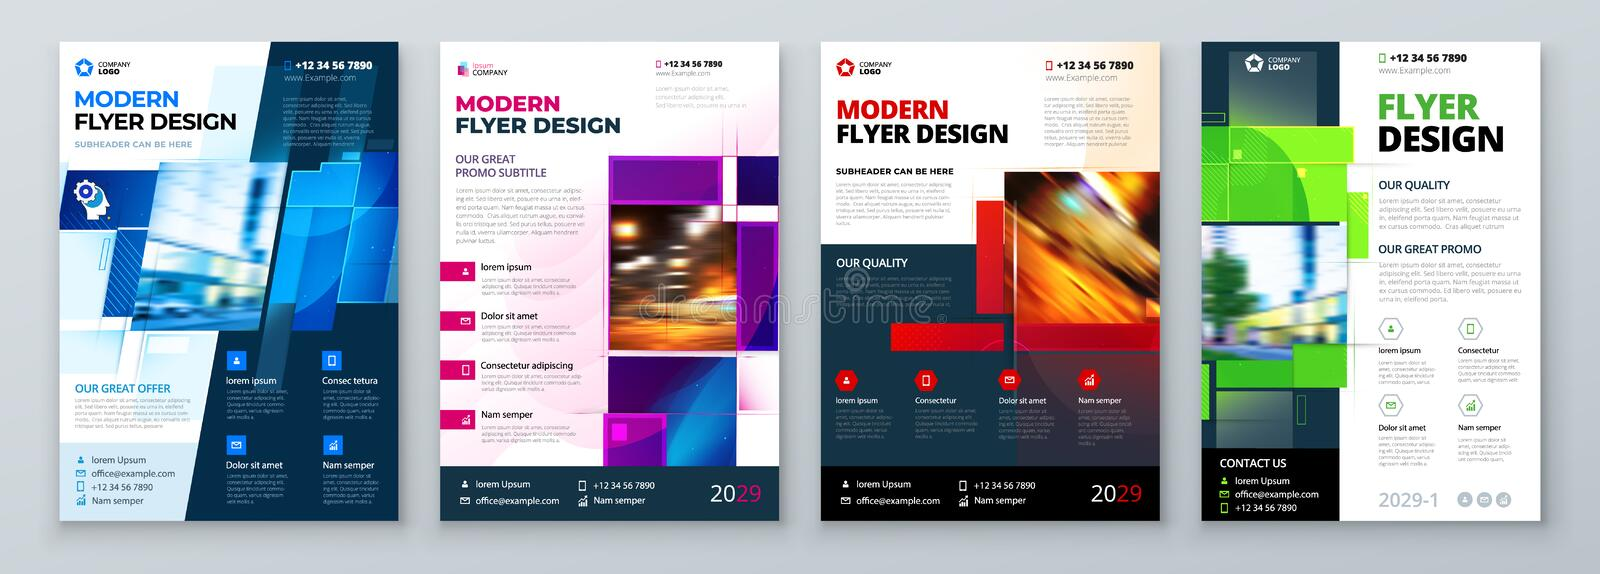 Flyer Template Layout Design Corporate Business Flyer, Report, Catalog, Magazine Mockup Kreatives, modernes Lichtkonzept vektor abbildung